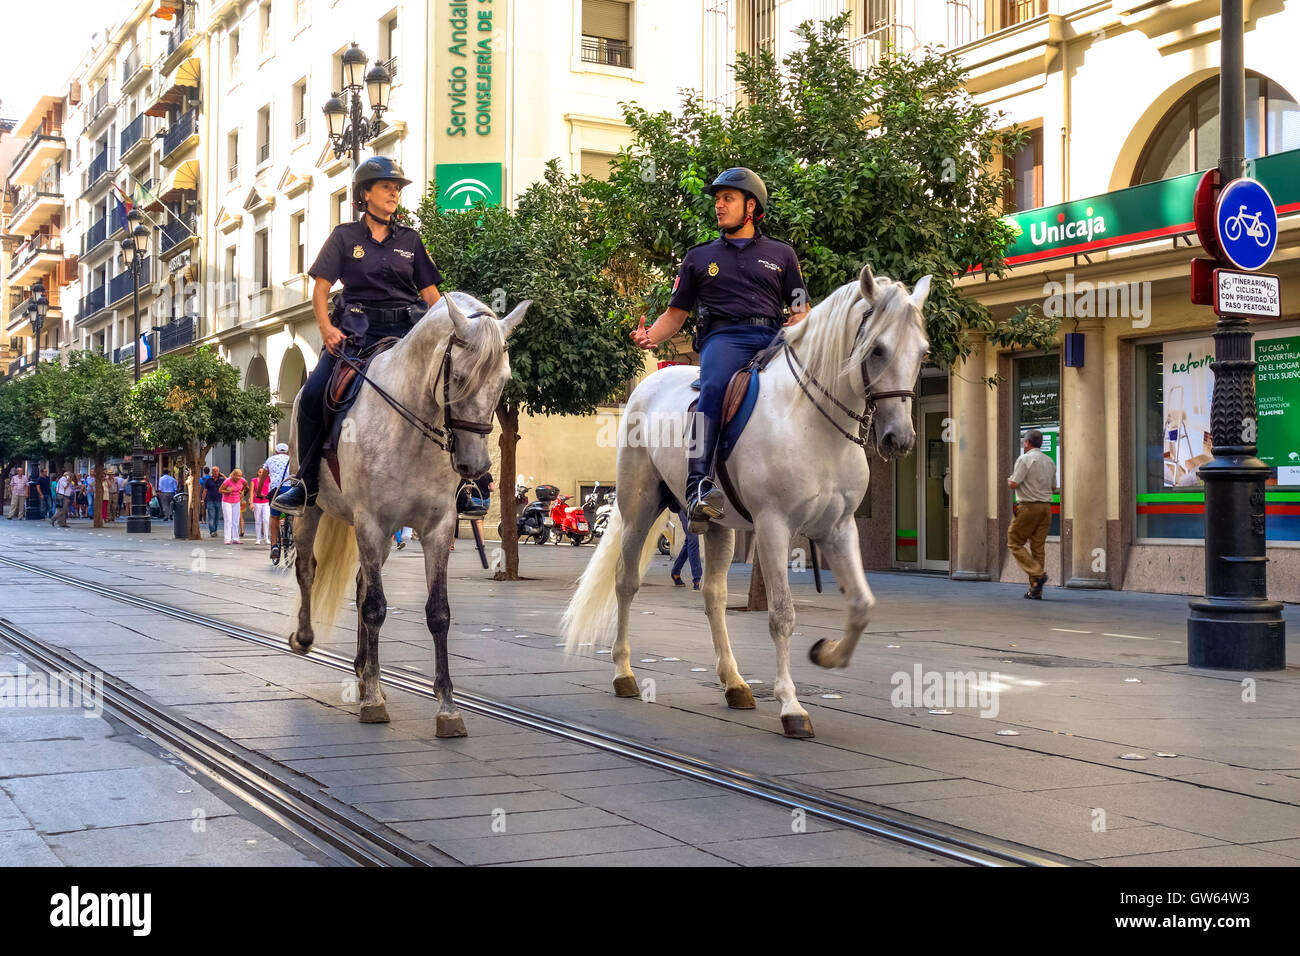 Spanish Mounted police officers on horses patrolling city of Seville, Andalusia, Spain. - Stock Image